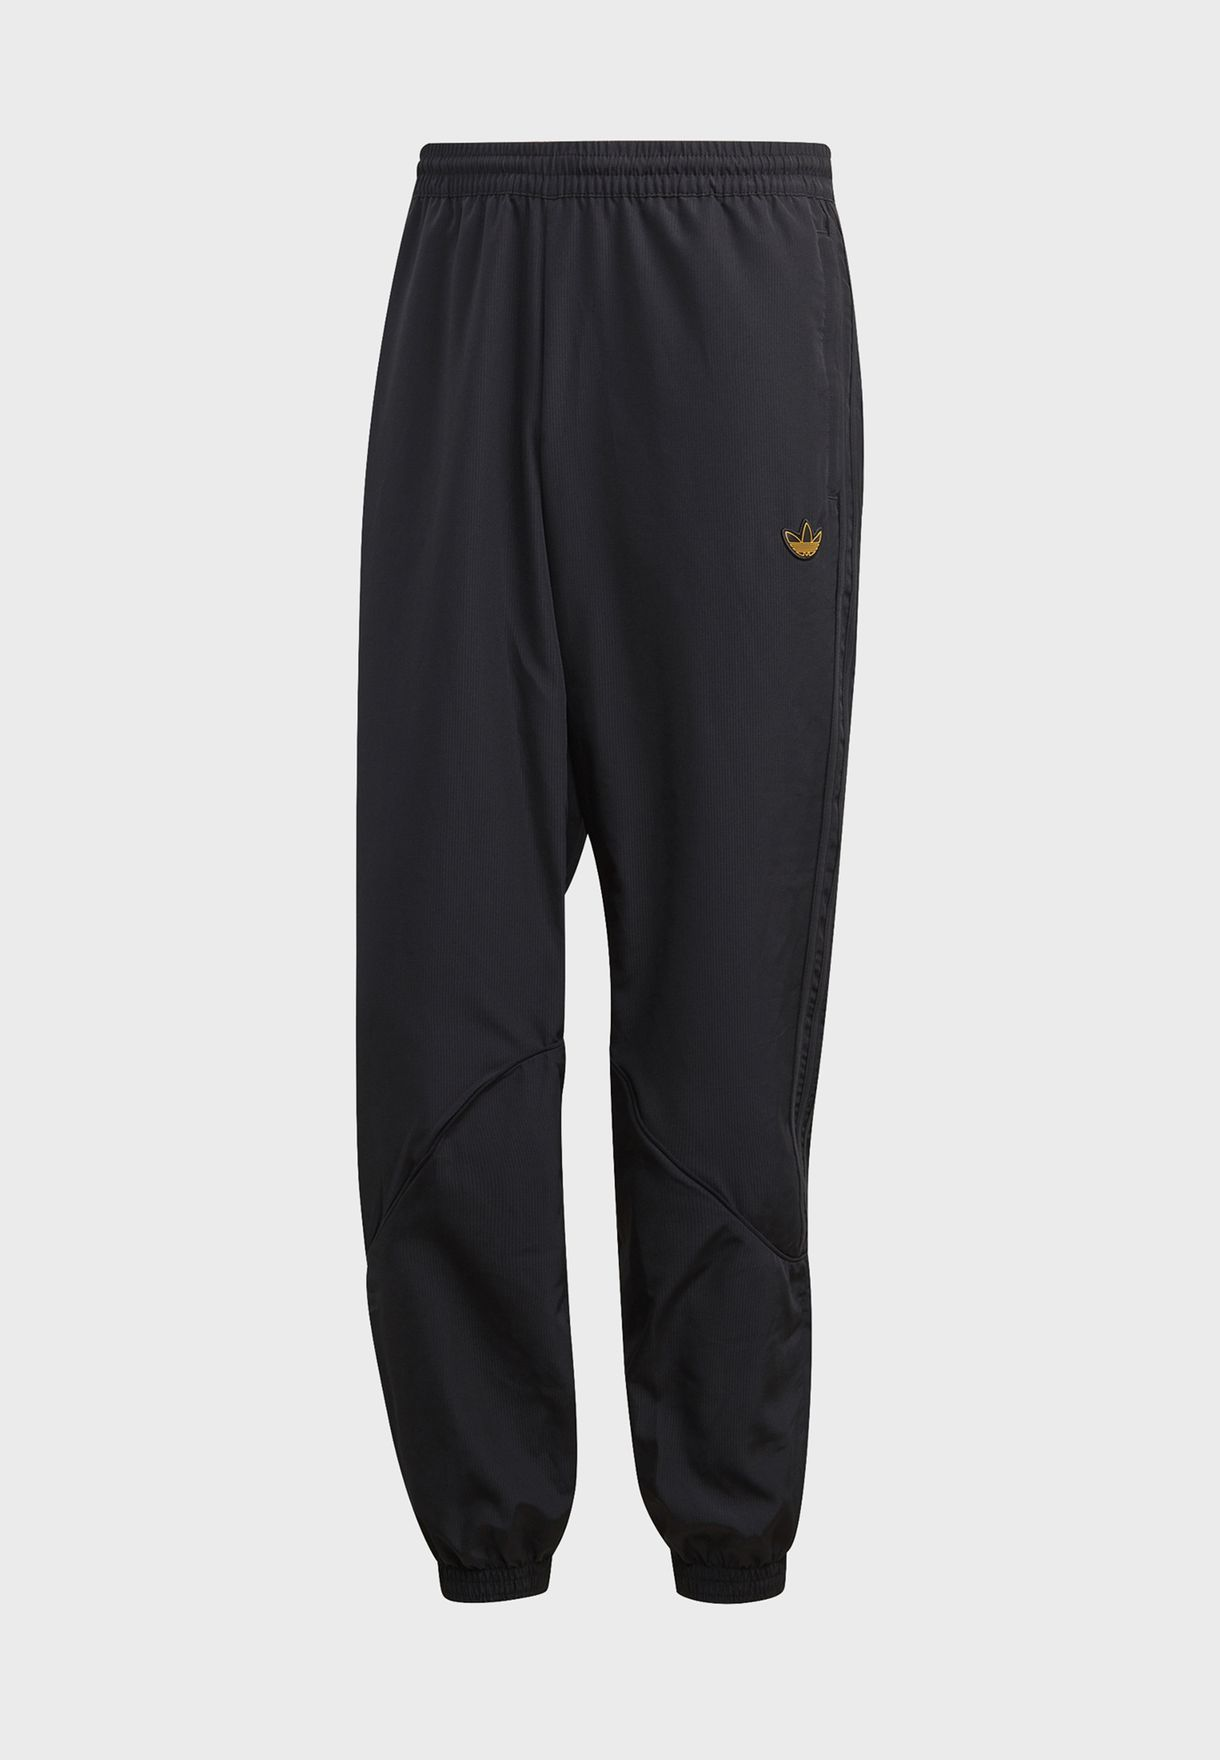 OTL 2K Sweatpants